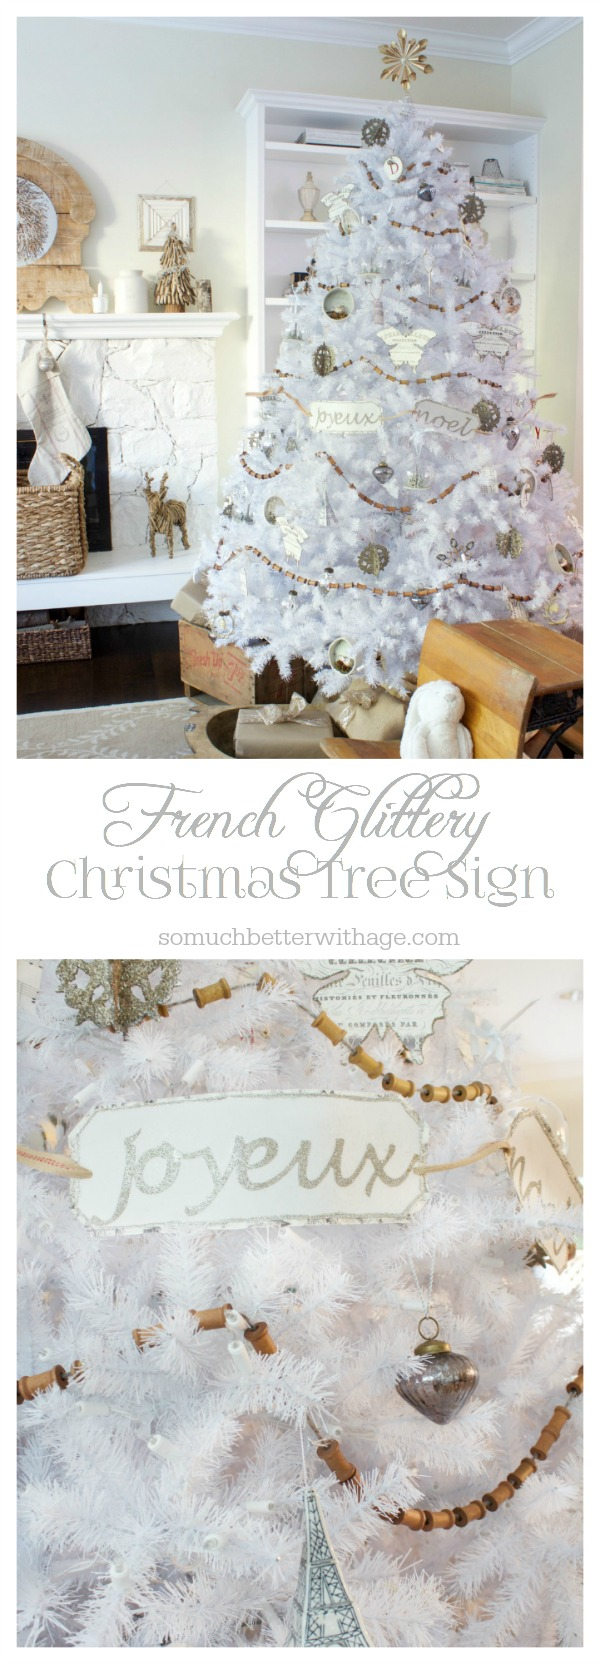 French Glittery Christmas Tree Sign - So Much Better With Age